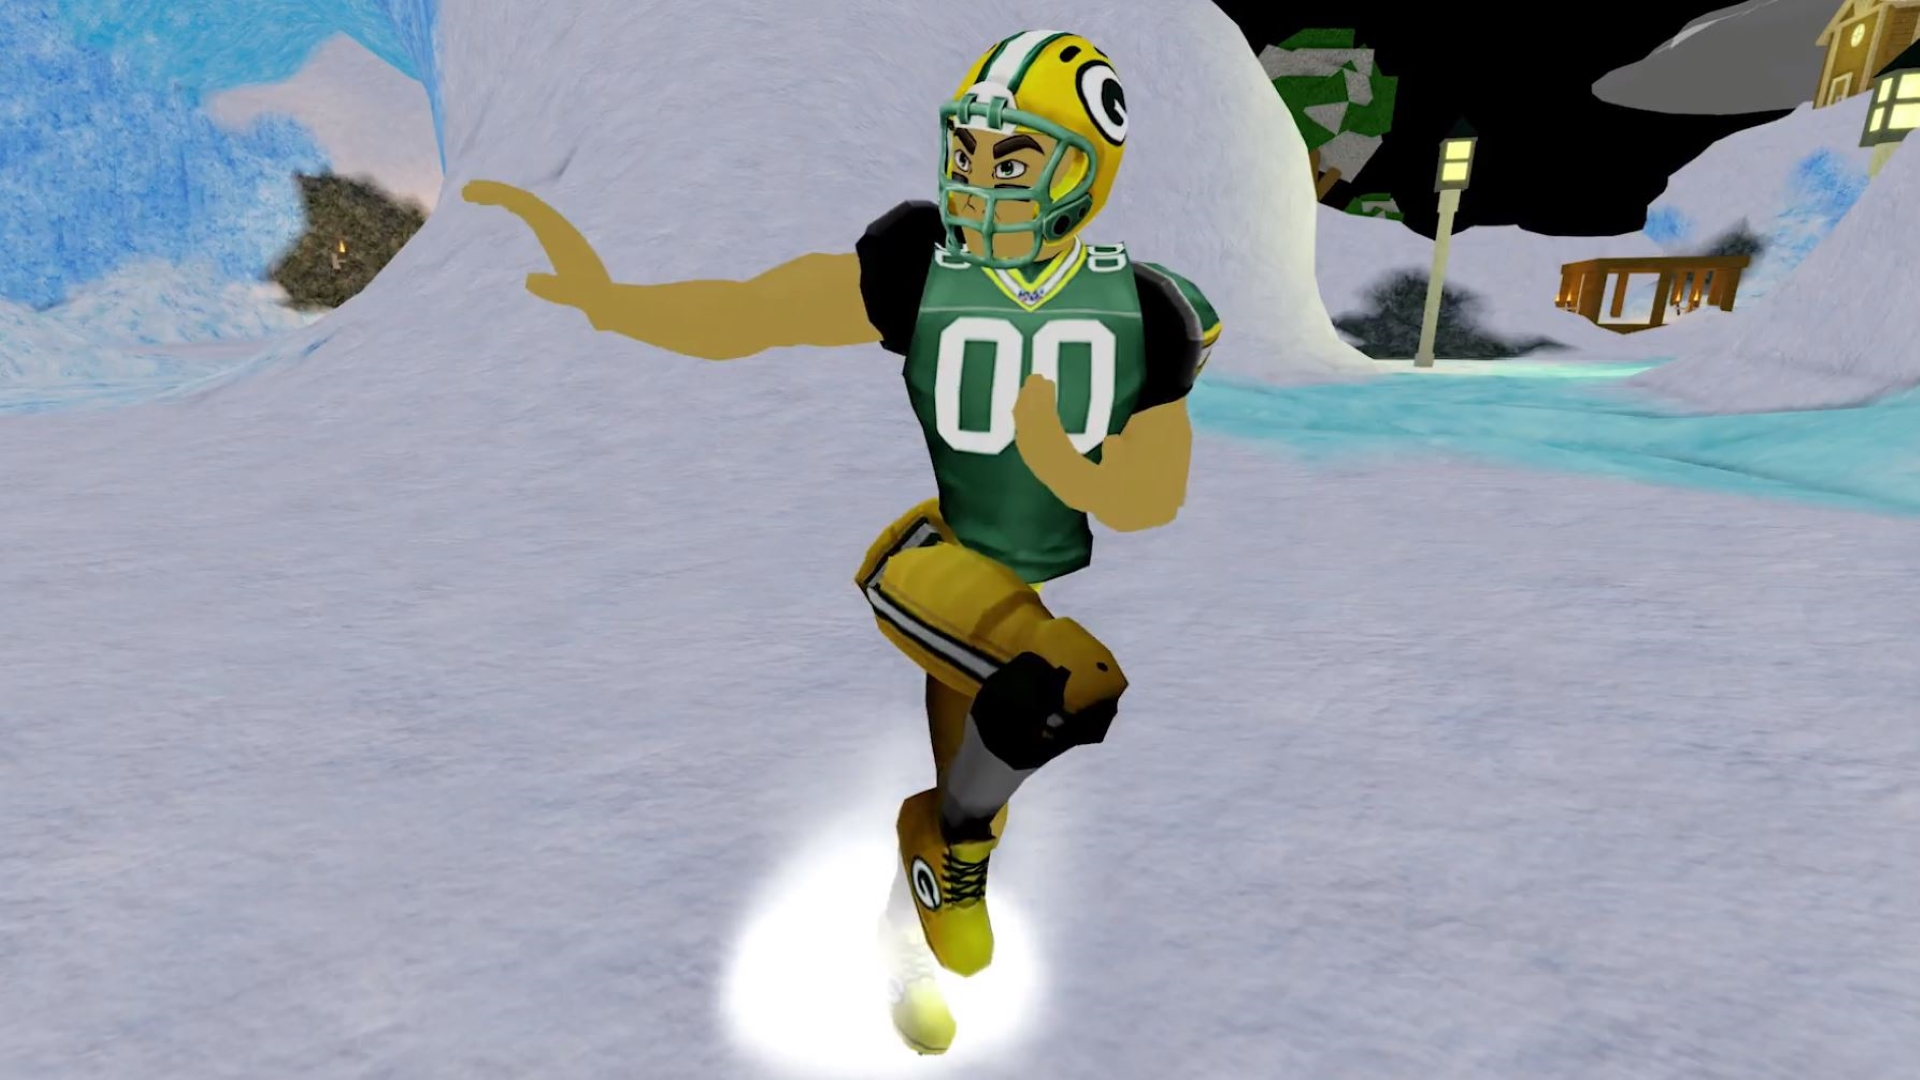 Roblox teams up with the NFL for the league's 100th ...